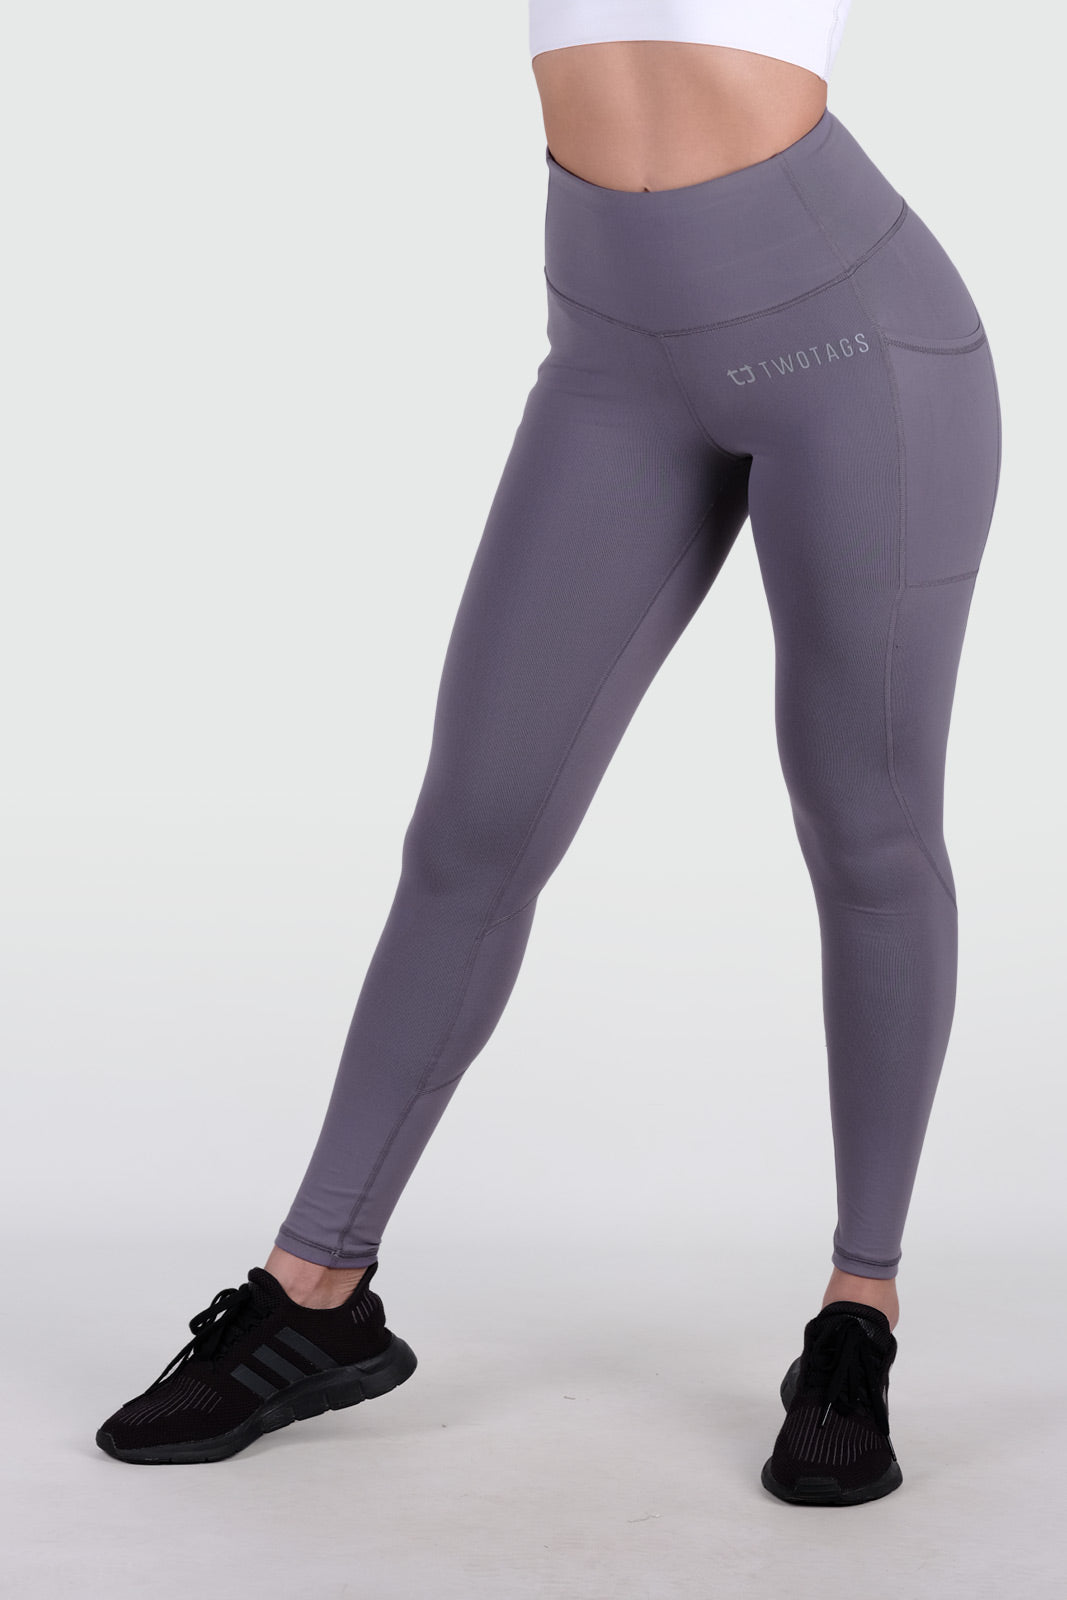 Sweetheart Highwaisted Leggings - Periwinkle